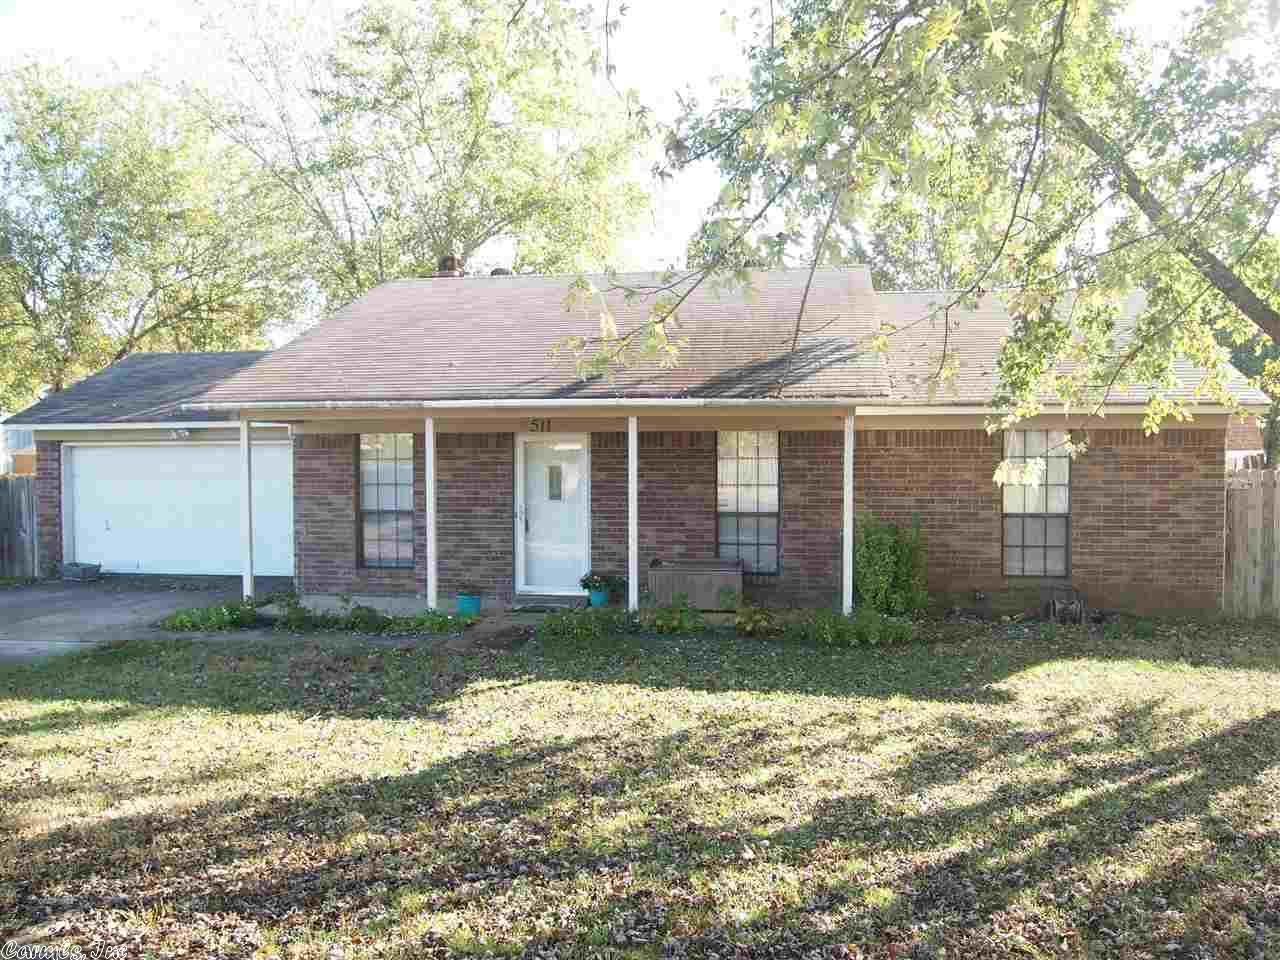 Property Photo ... & Listing: 511 Sanders Bryant AR.| MLS# 16032394 | Pam Bates | 501 ... azcodes.com